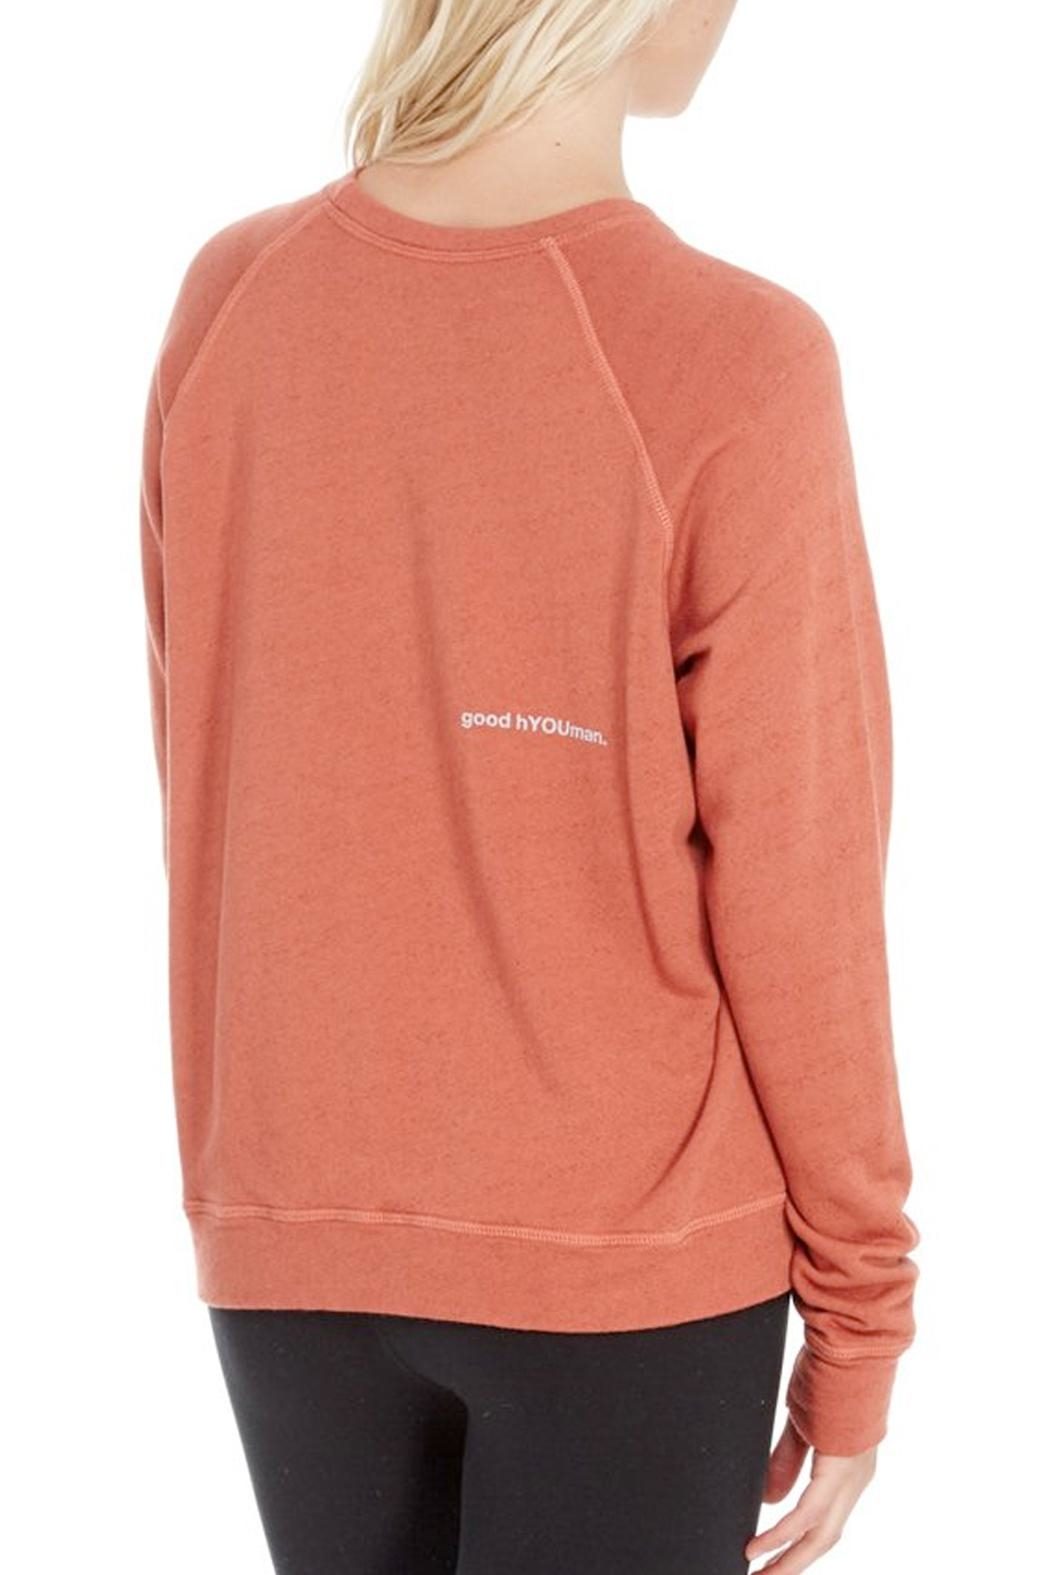 GoodhYOUman Retro Fit Pullover - Front Full Image